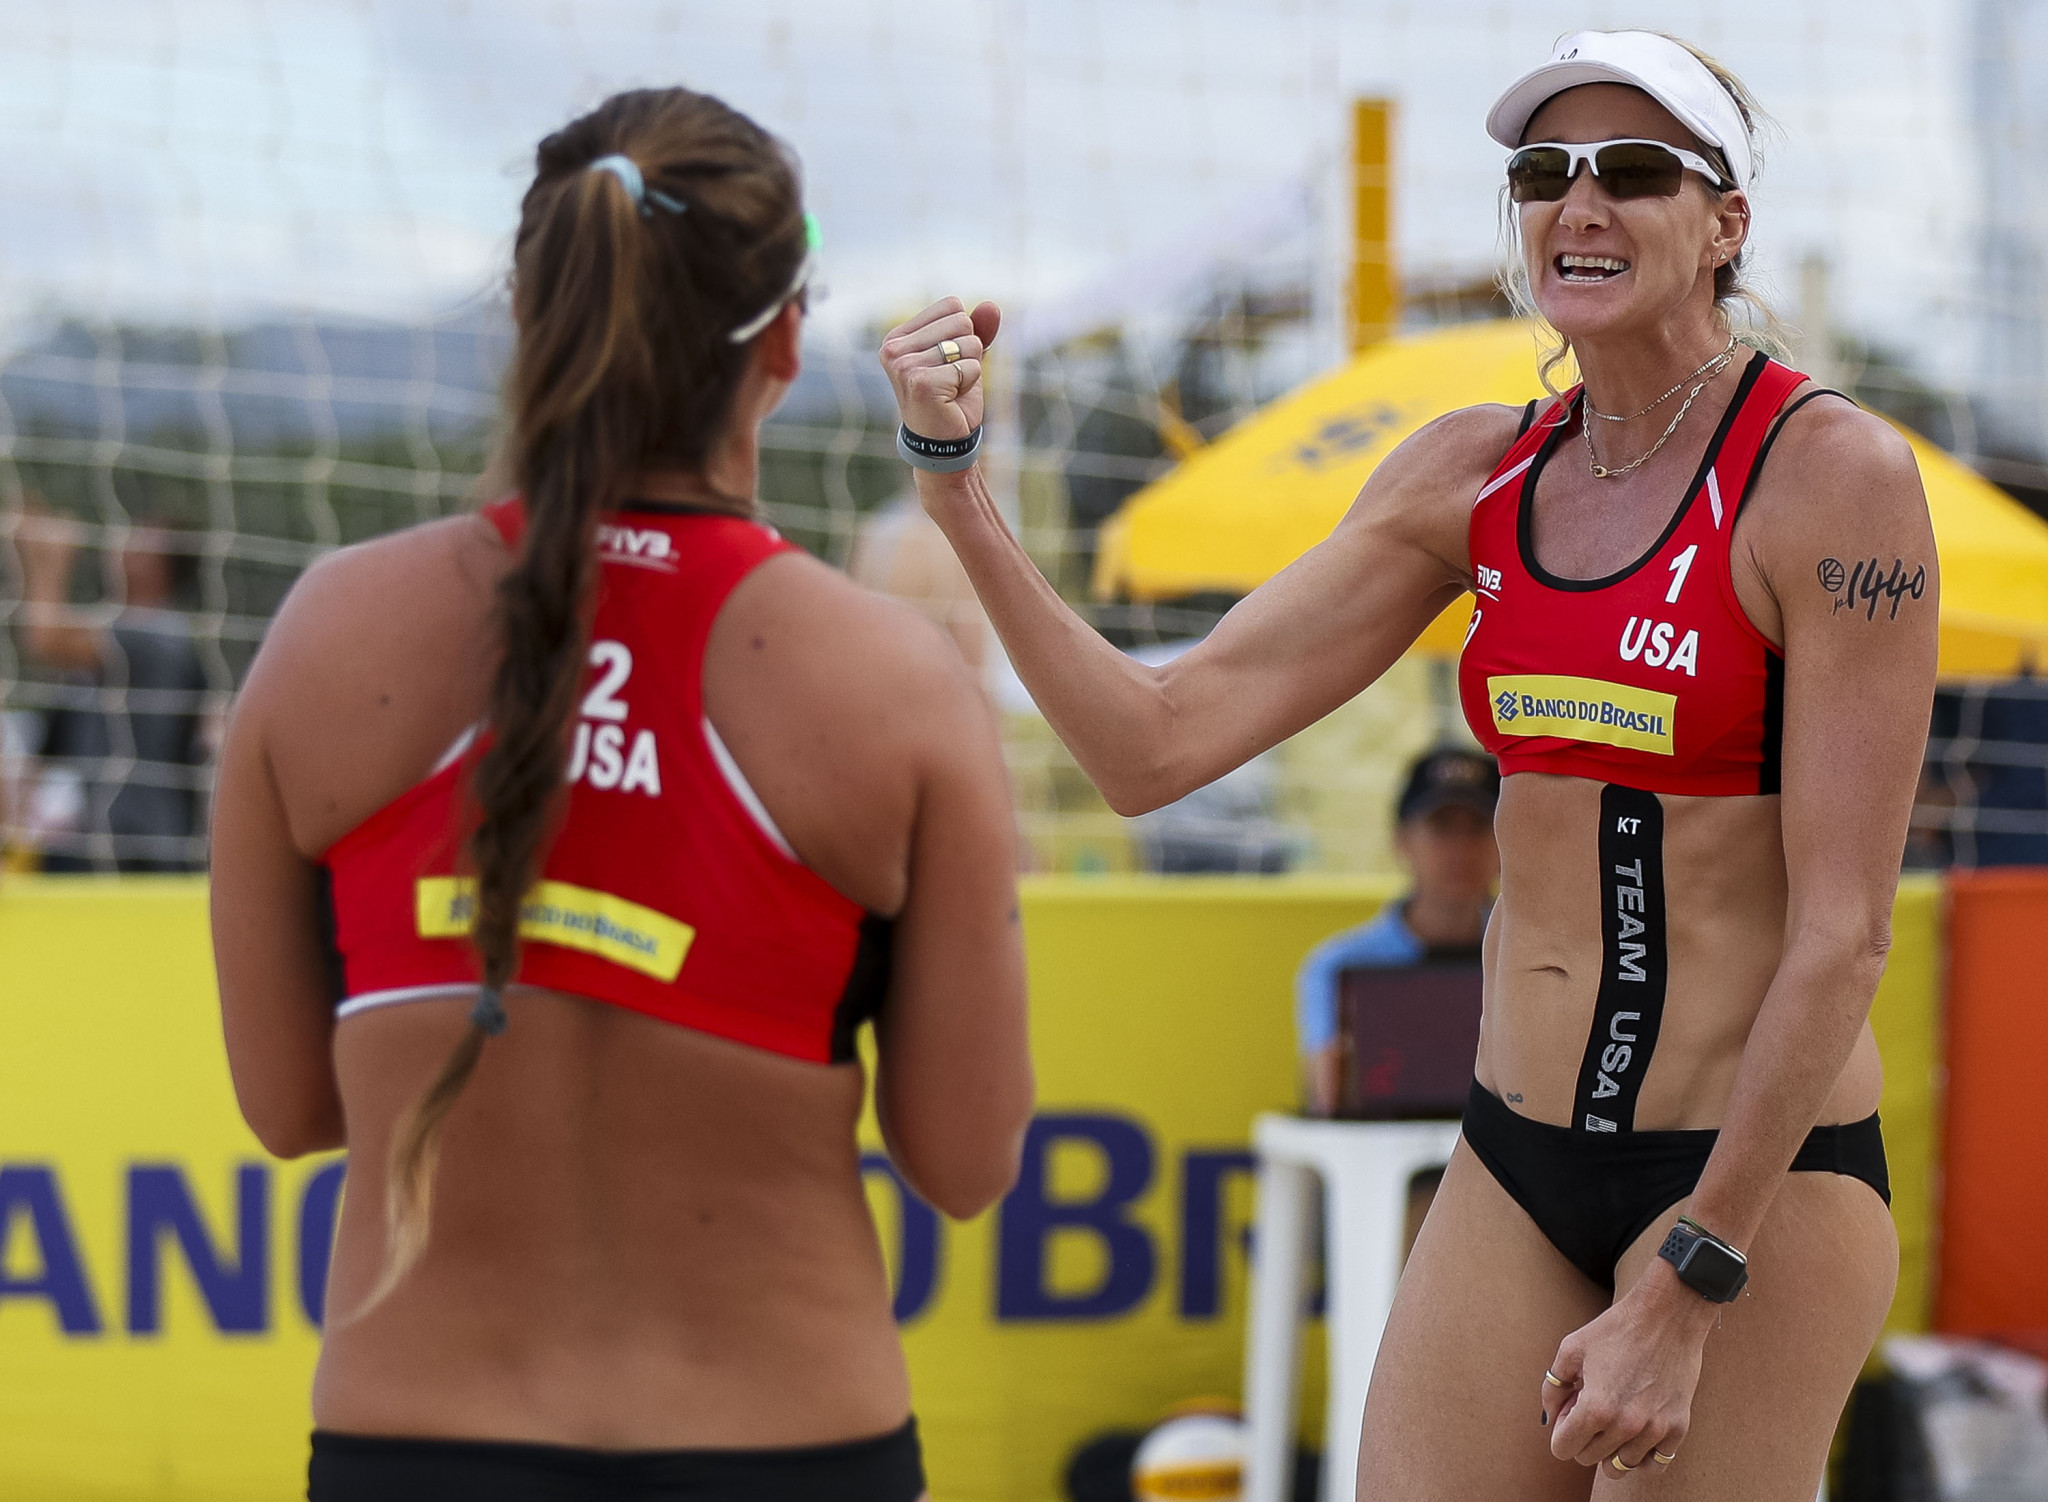 Top-ranked Canadians Bansley and Wilkerson miss out on FIVB Beach World Tour semi-finals